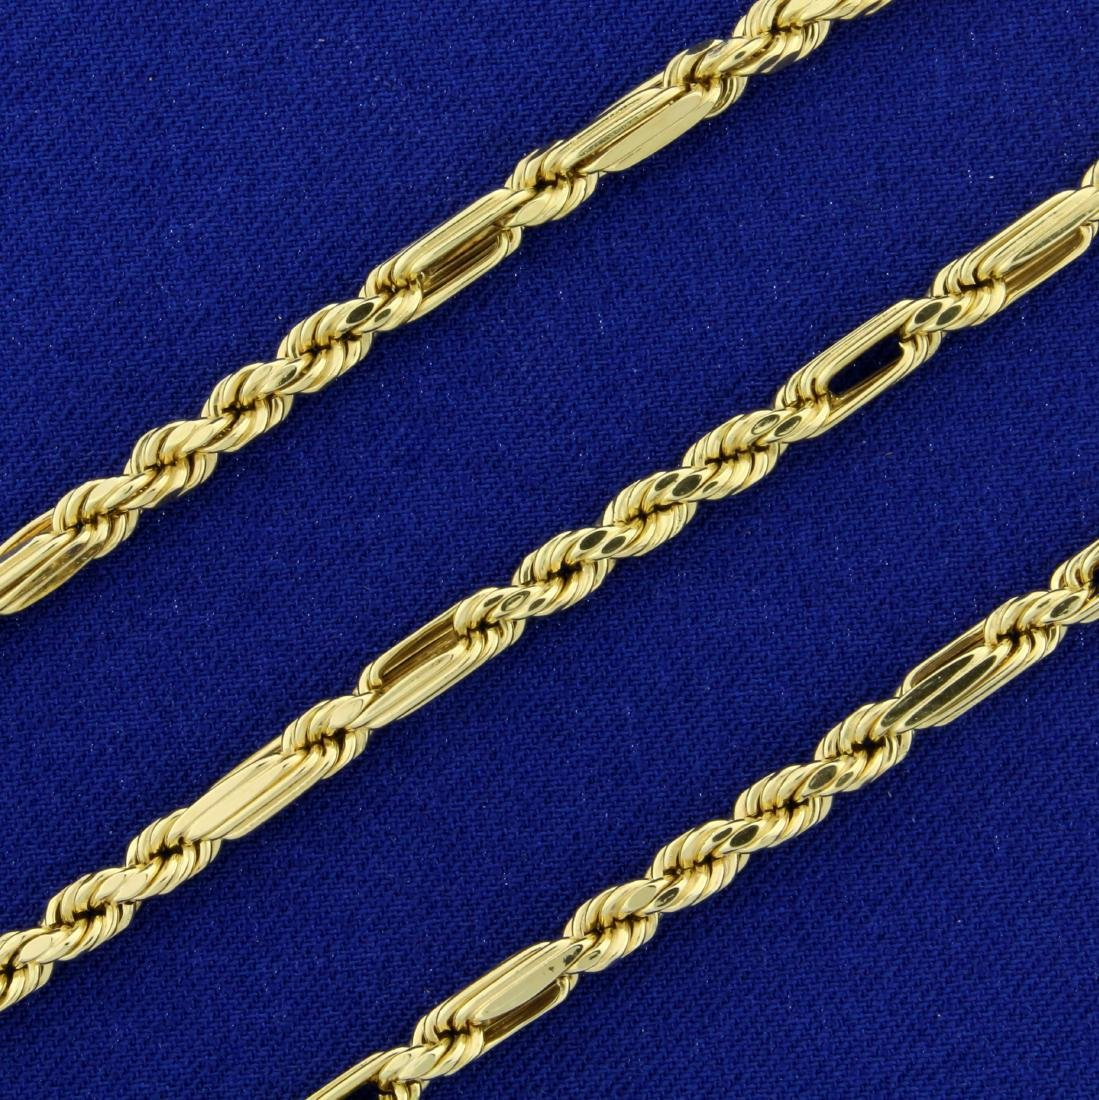 Designer 20 Inch Rope Style Neck Chain in 14K Yellow - 2